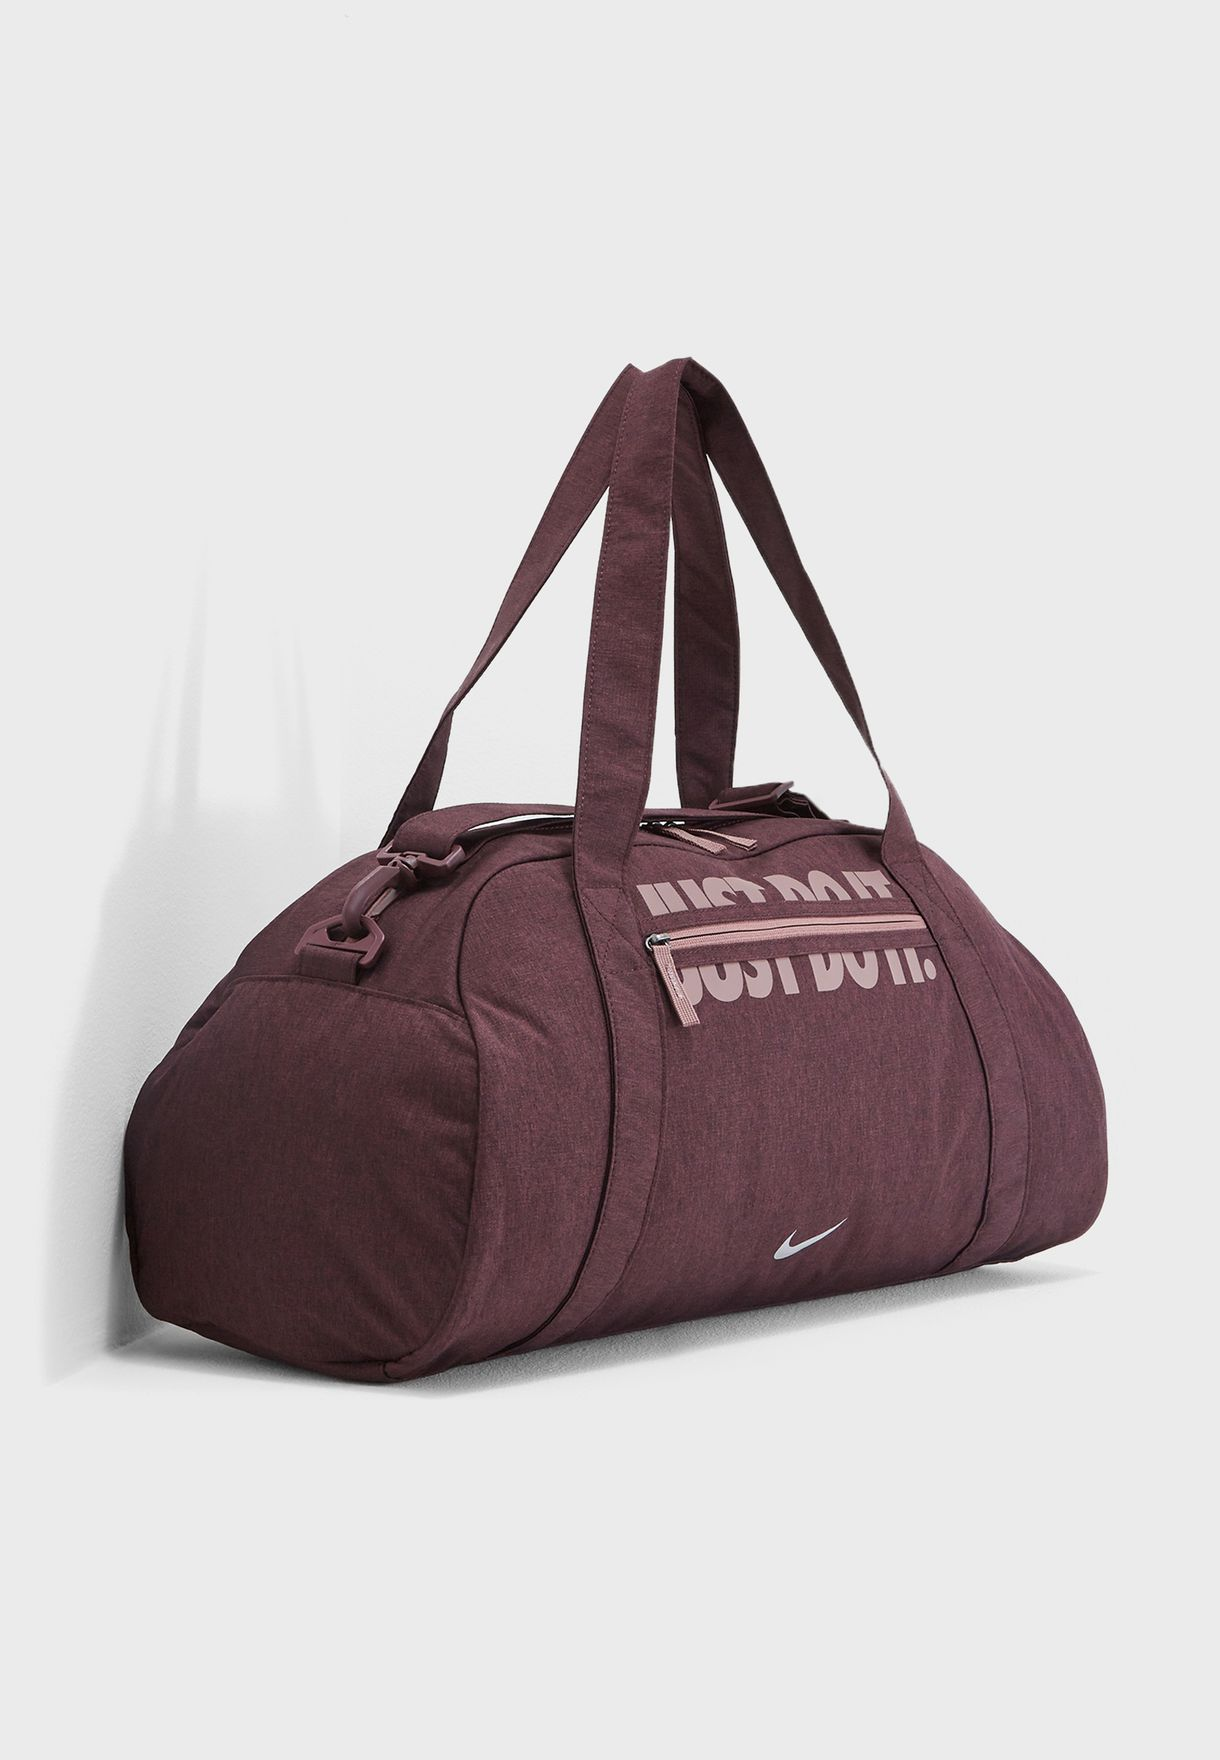 8970598a74f5 Shop Nike burgundy Gym Club Duffel BA5490-653 for Women in Saudi -  NI727AC64HCD